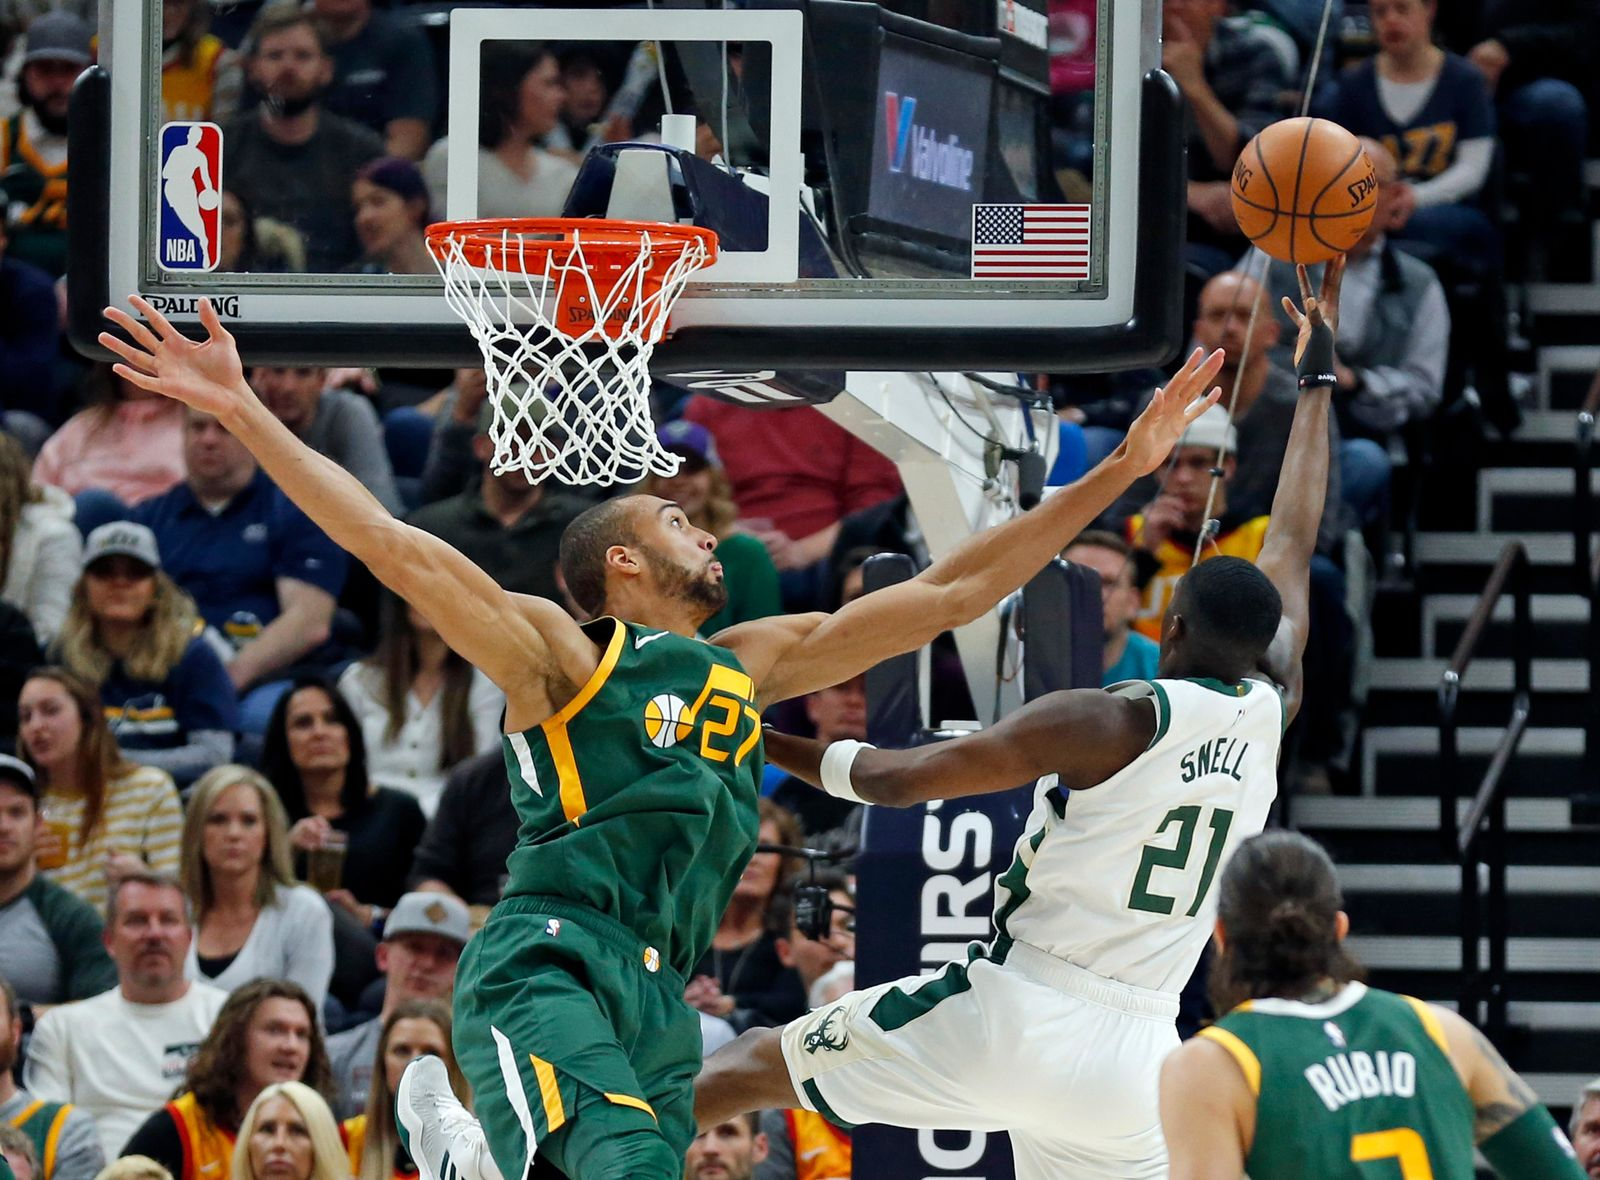 Utah Jazz center Rudy Gobert (27) defends against Milwaukee Bucks guard Tony Snell (21) during the first half of an NBA basketball game Saturday, March 2, 2019, in Salt Lake City. (AP Photo/Rick Bowmer)